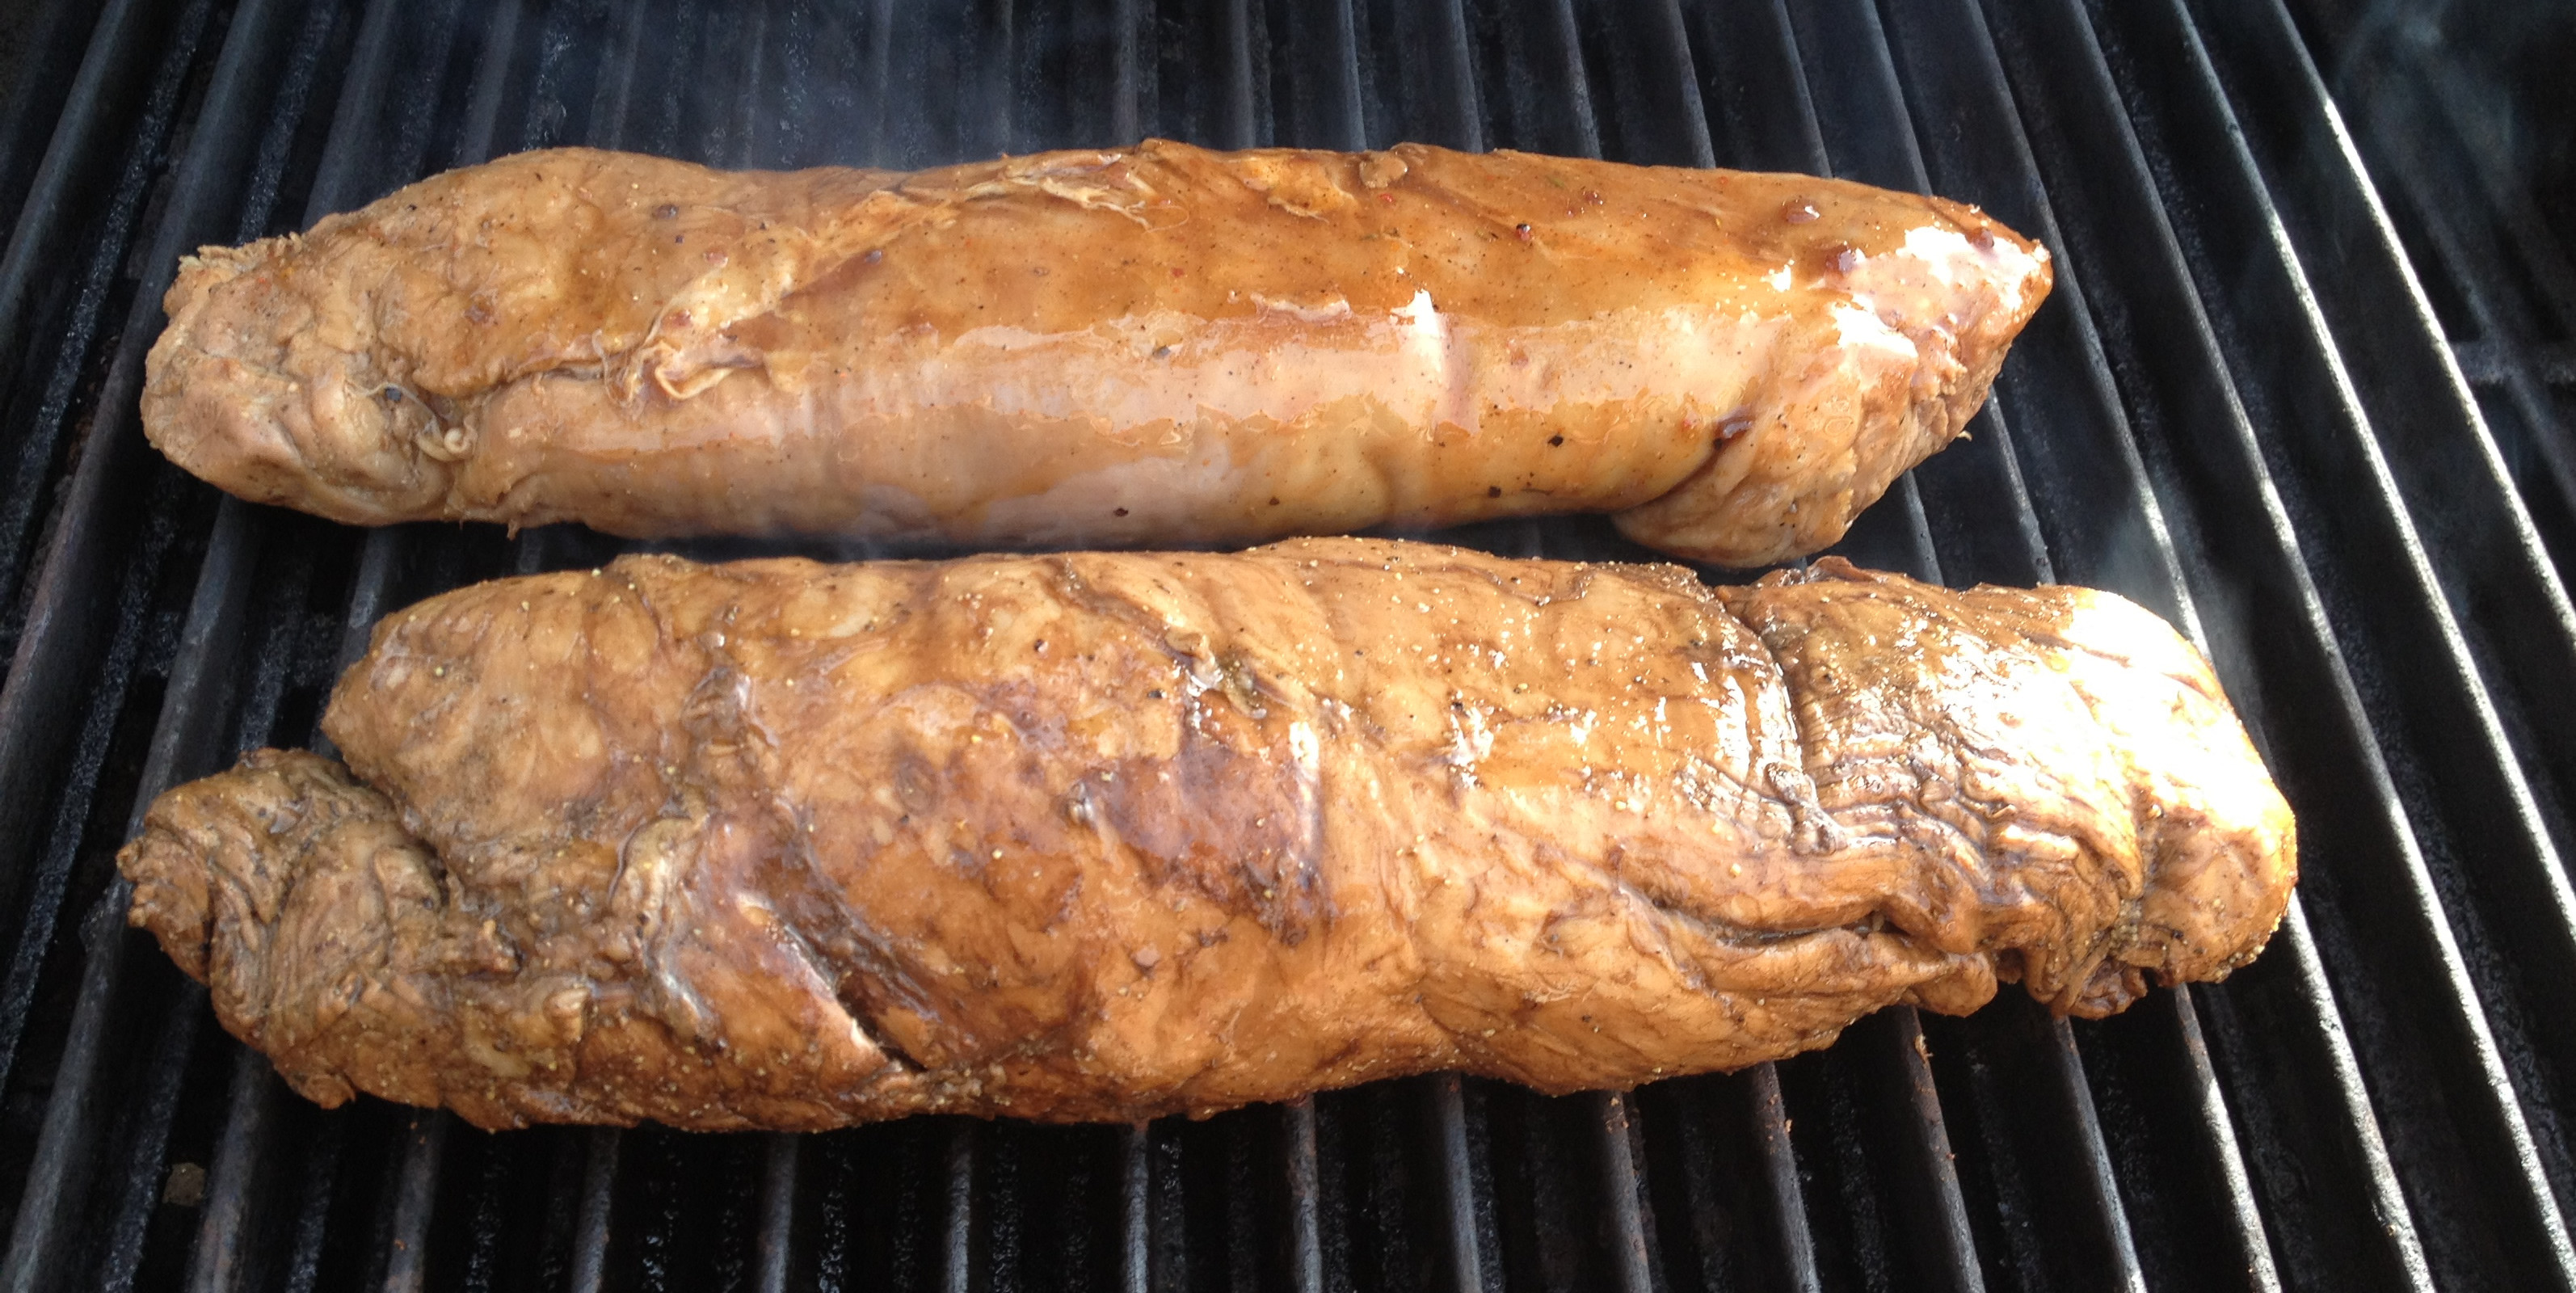 Grilled Whole Pork Loin  grilling whole pork loin